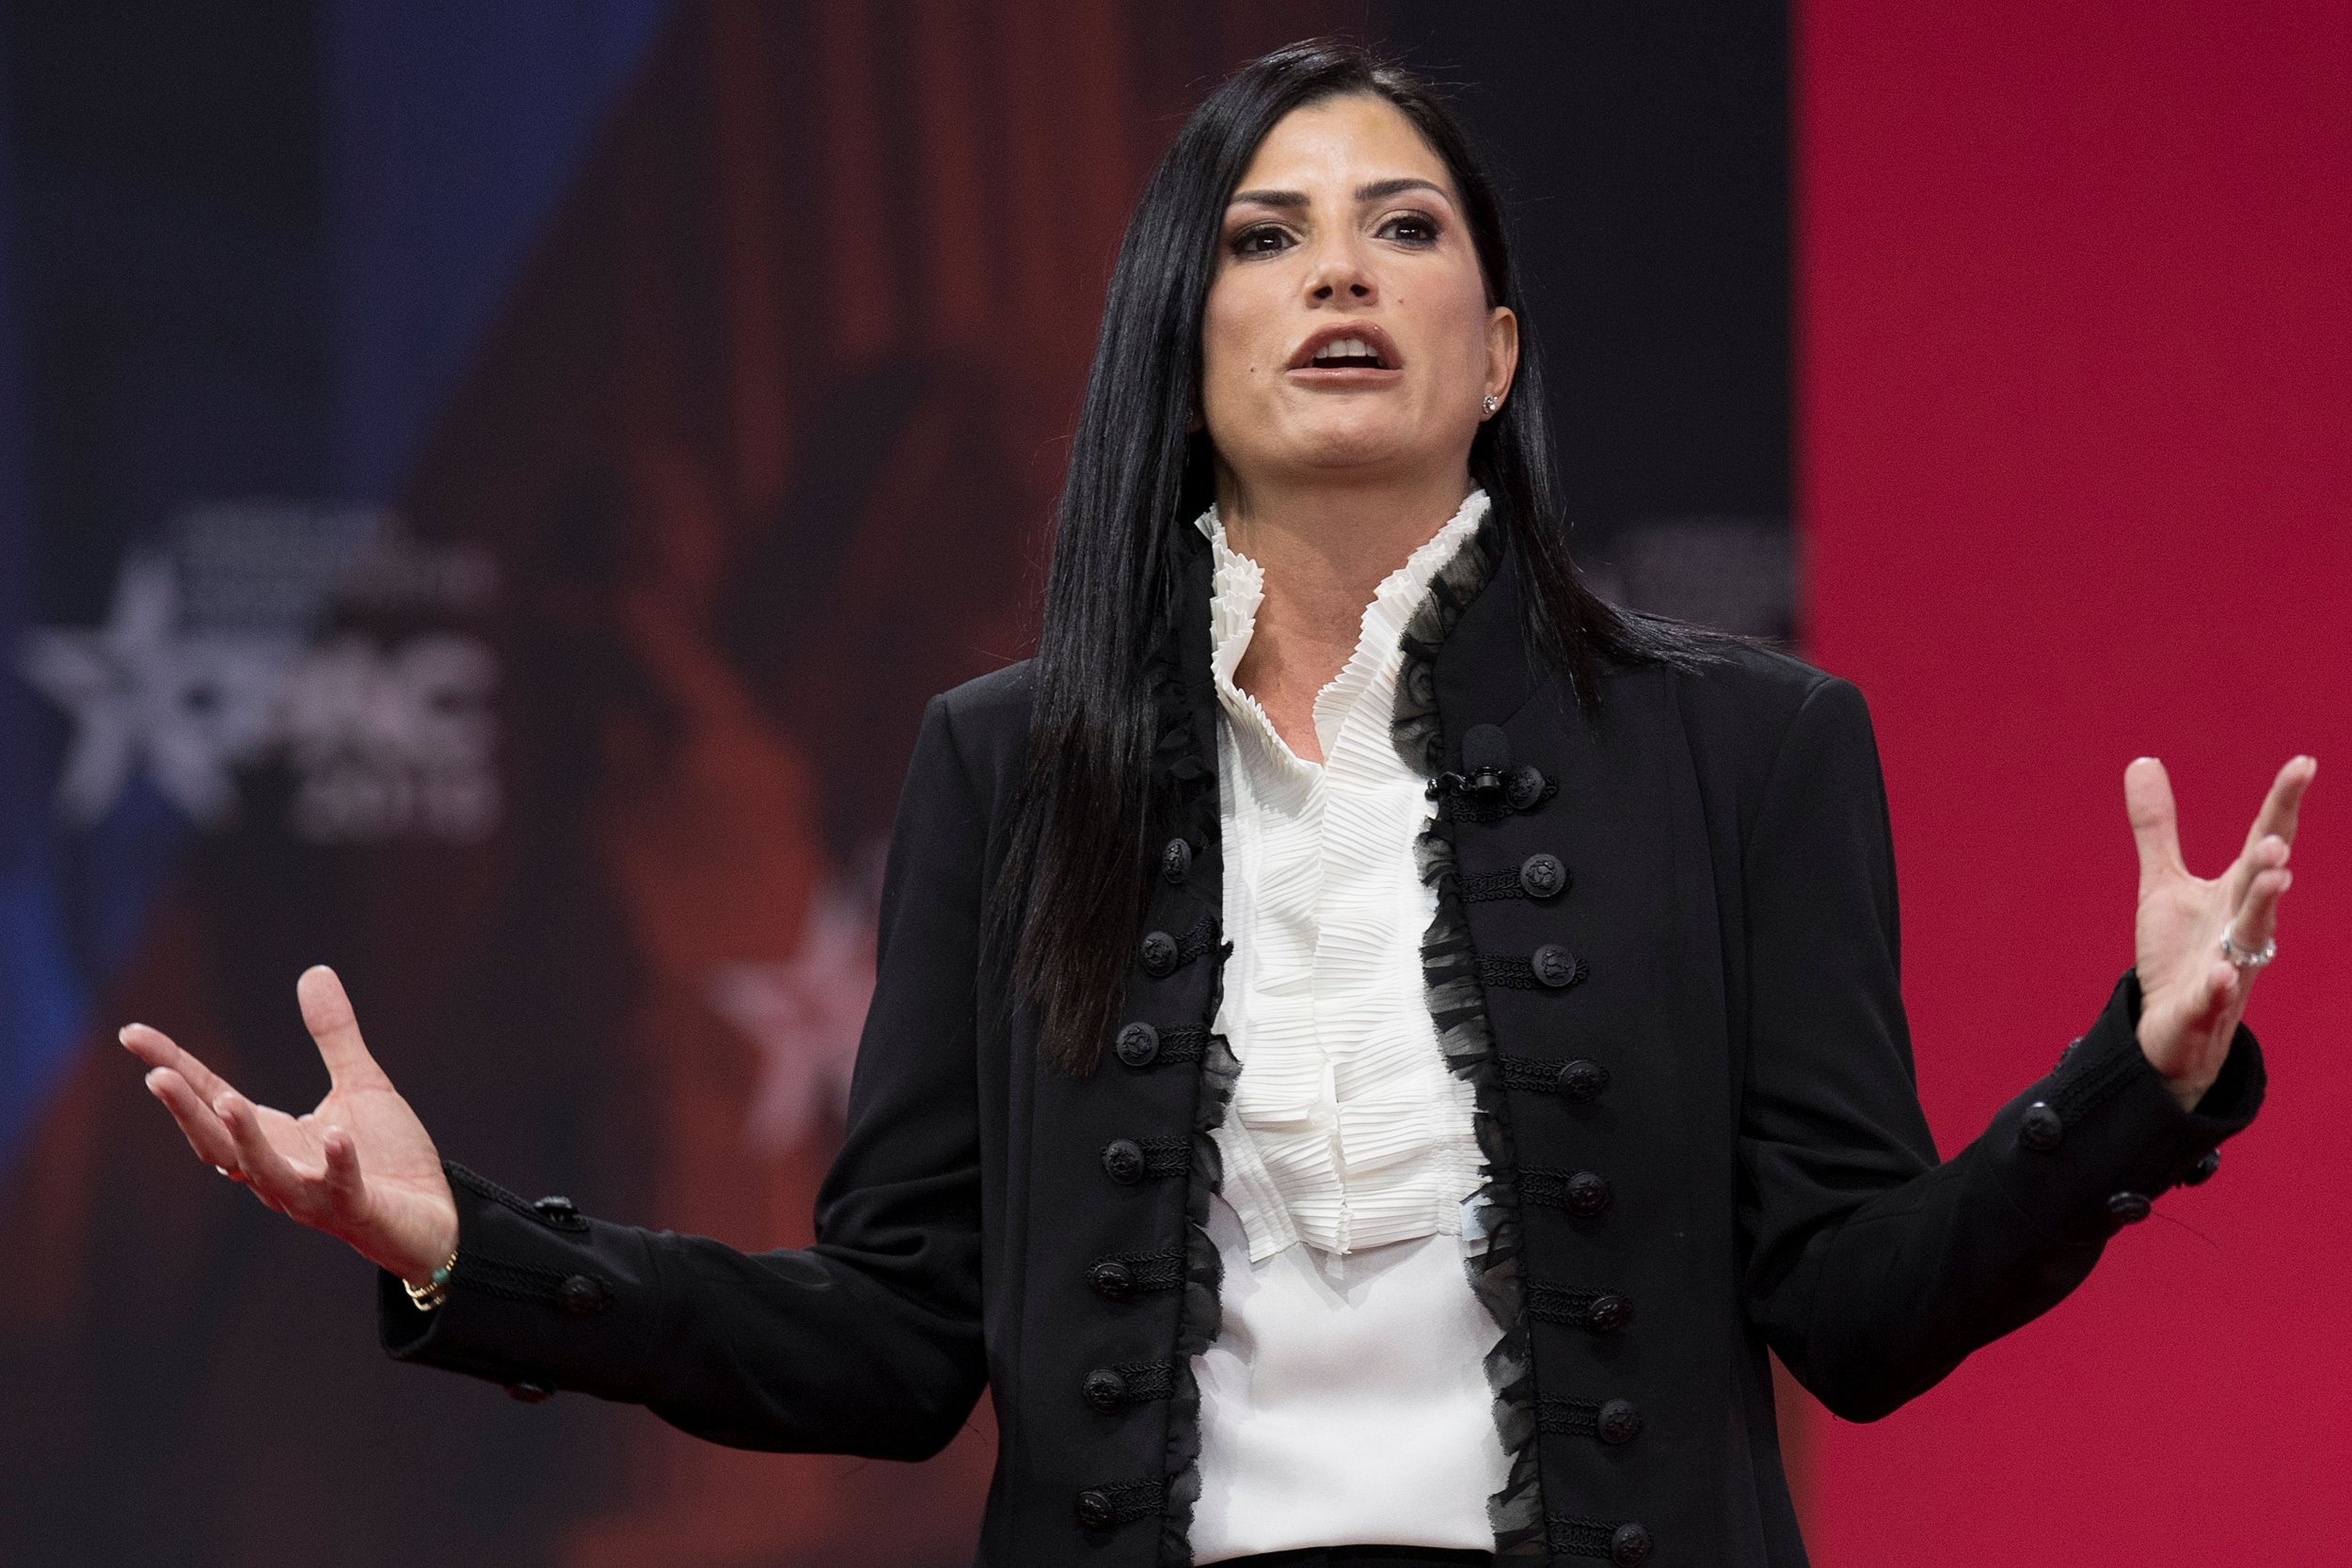 """NRA's Dana Loesch says feminists should """"stay in their lane"""" and stop """"matriarchal witch hunt"""" against men"""